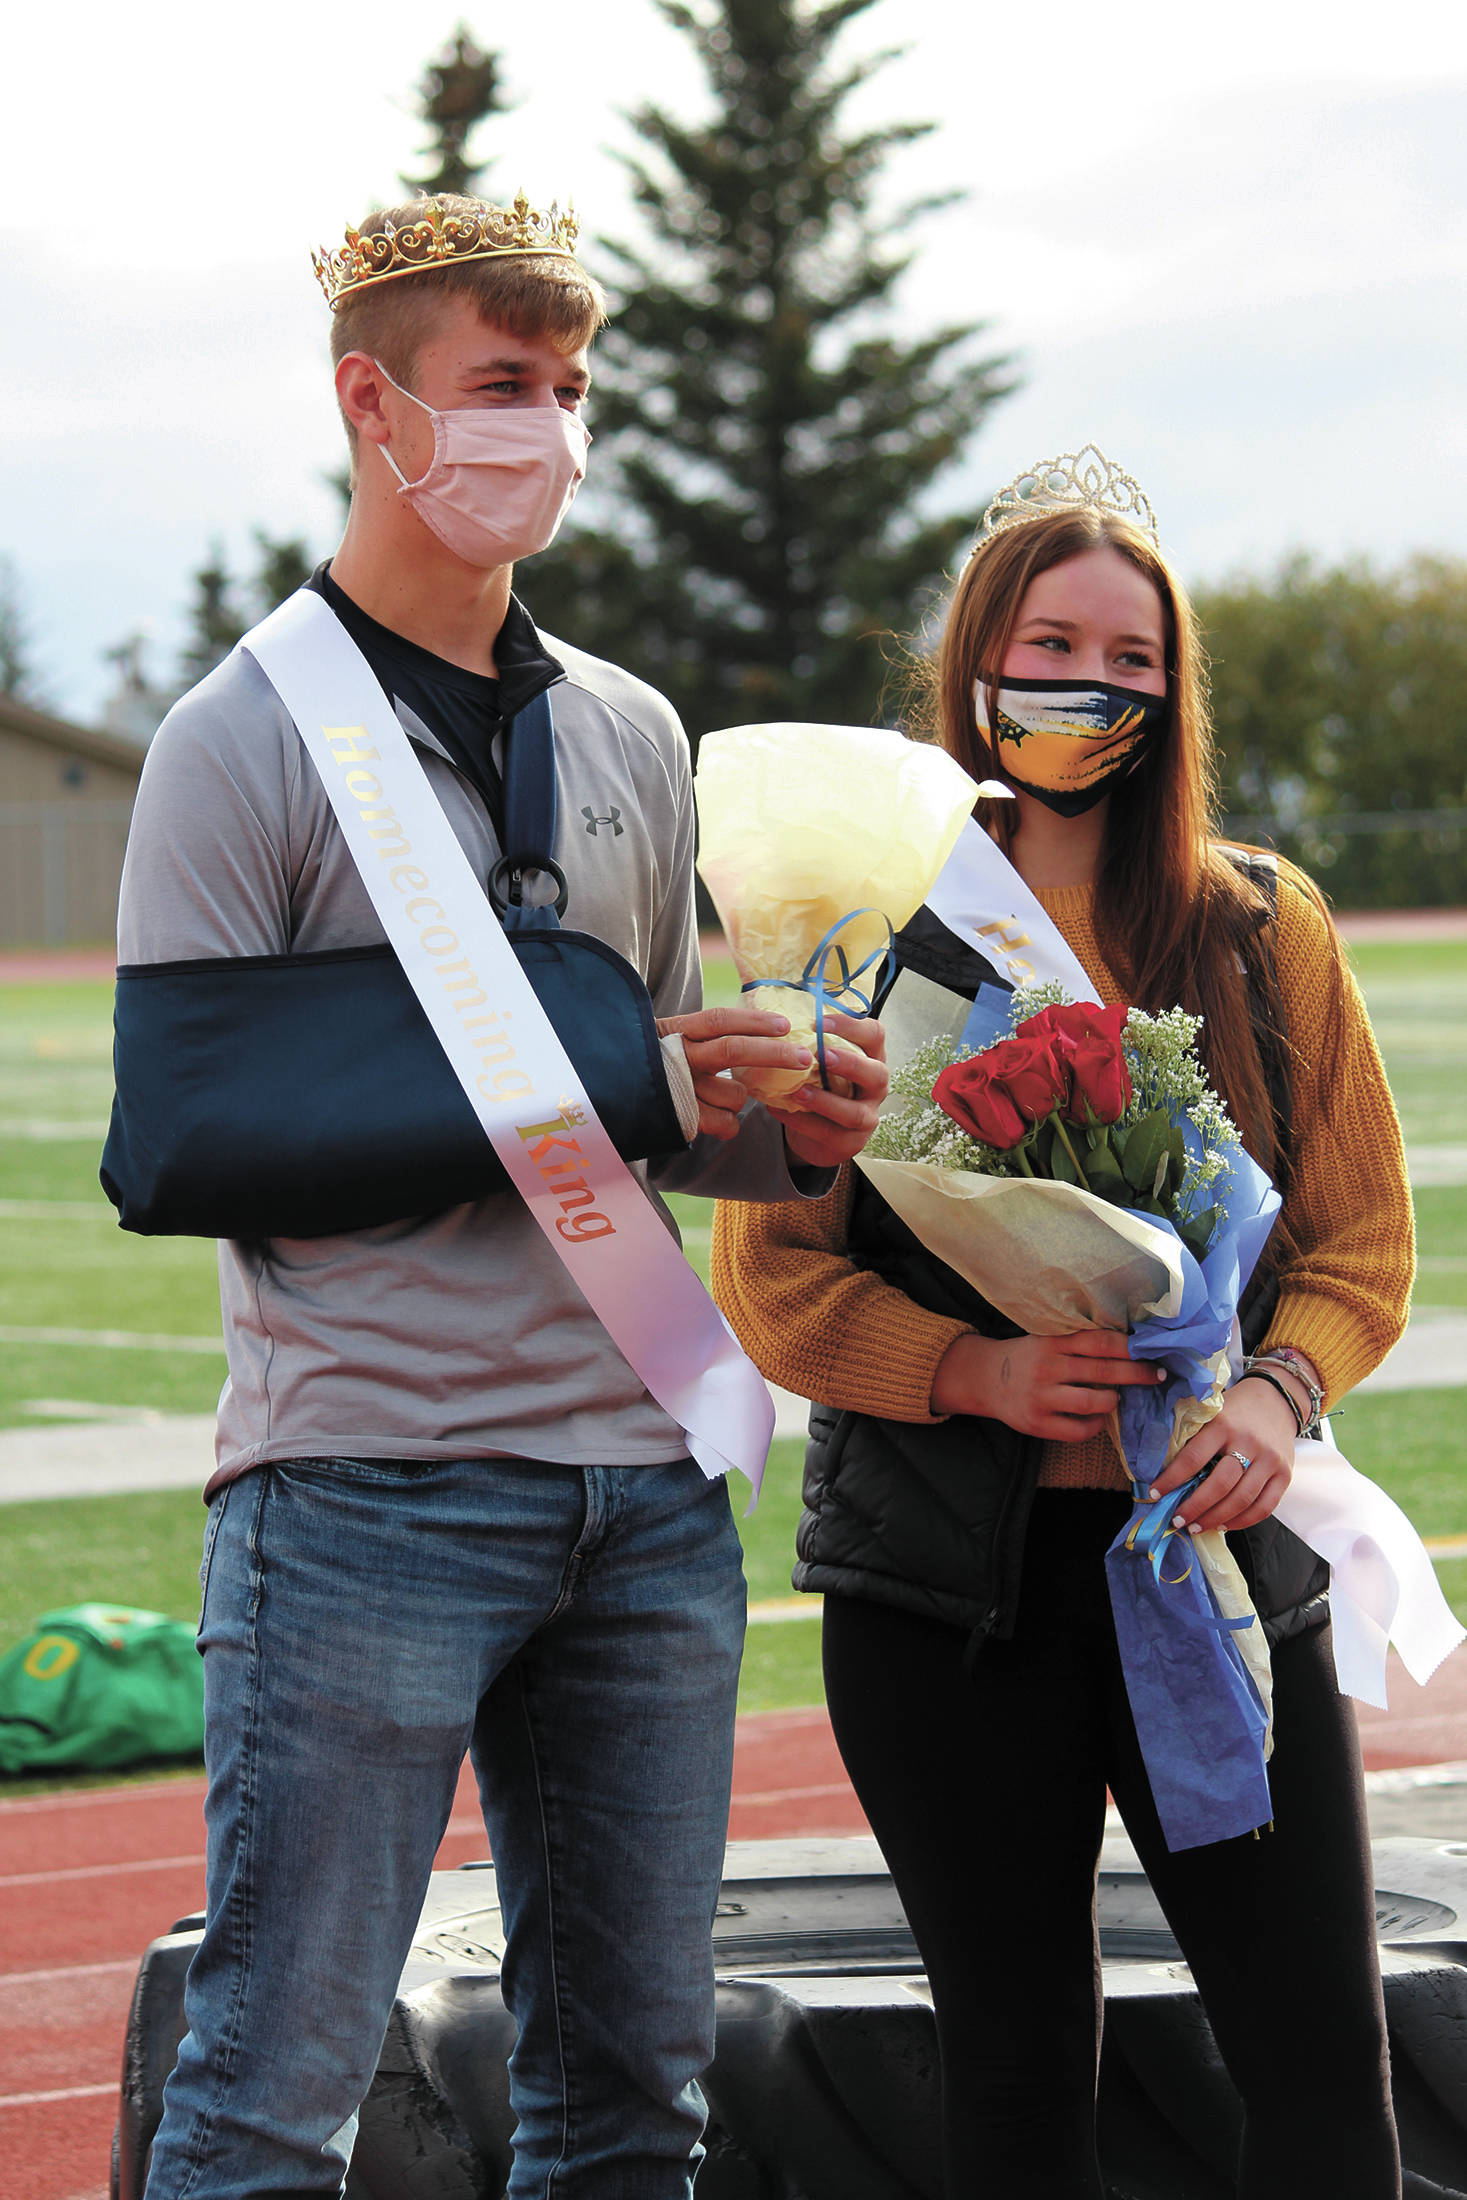 Seniors Clayton Beachy and Mary Black are crowned this year's homecoming king and queen during halftime at Homer High School's homecoming game Saturday, Oct. 3, 2020 in Homer, Alaska. (Photo by Megan Pacer/Homer News)